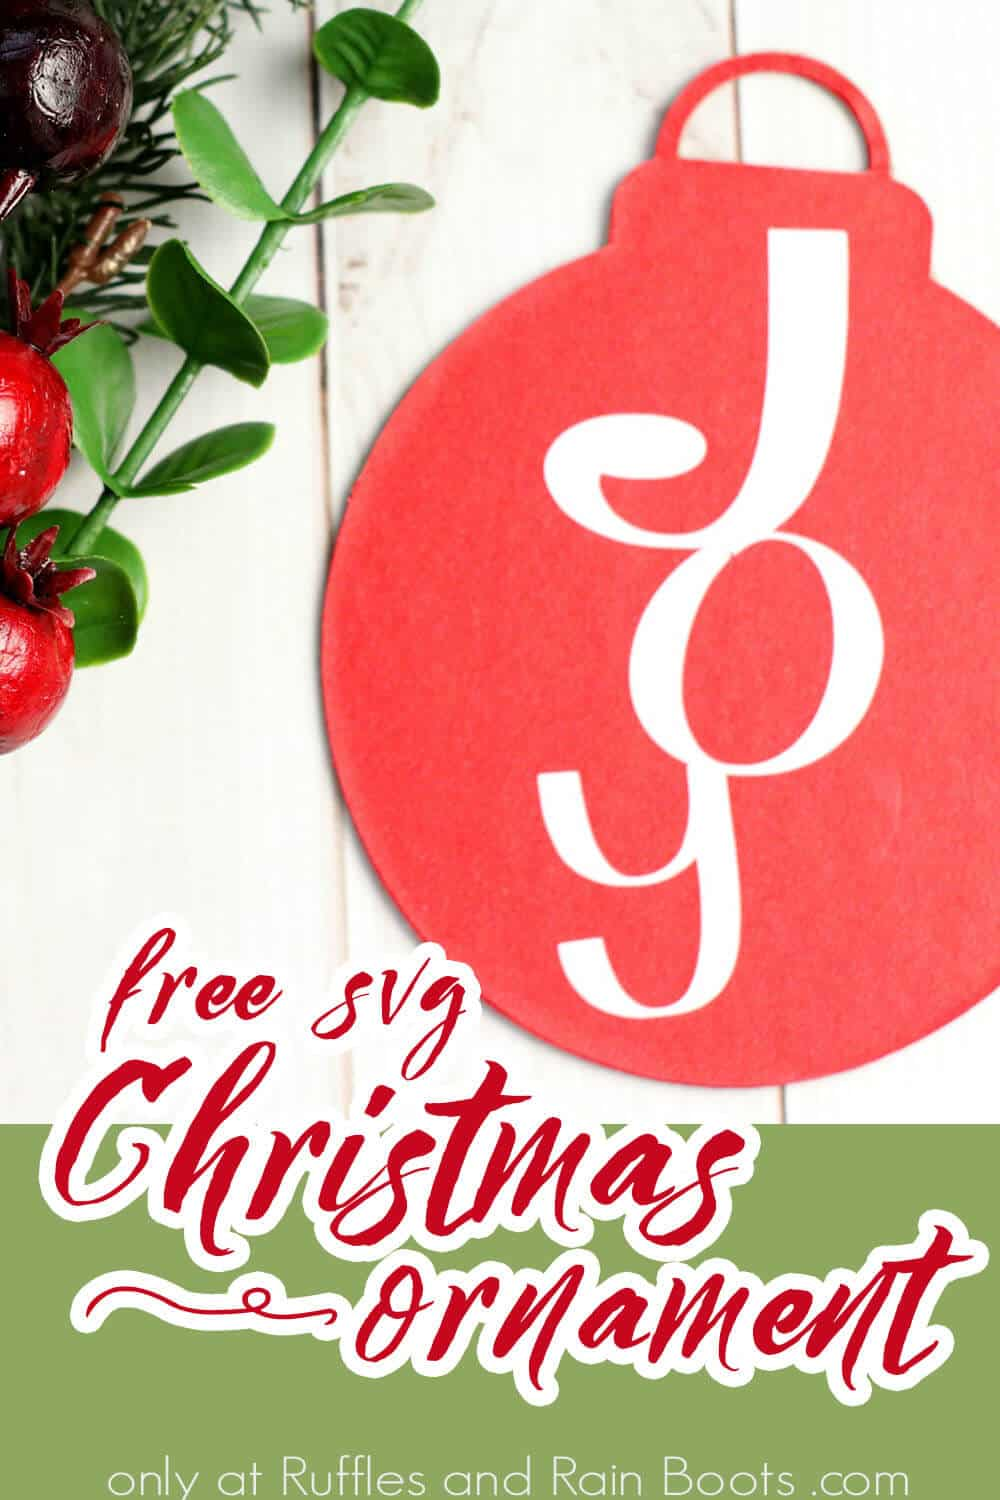 christmas joy ornament with text which reads free svg christmas ornament